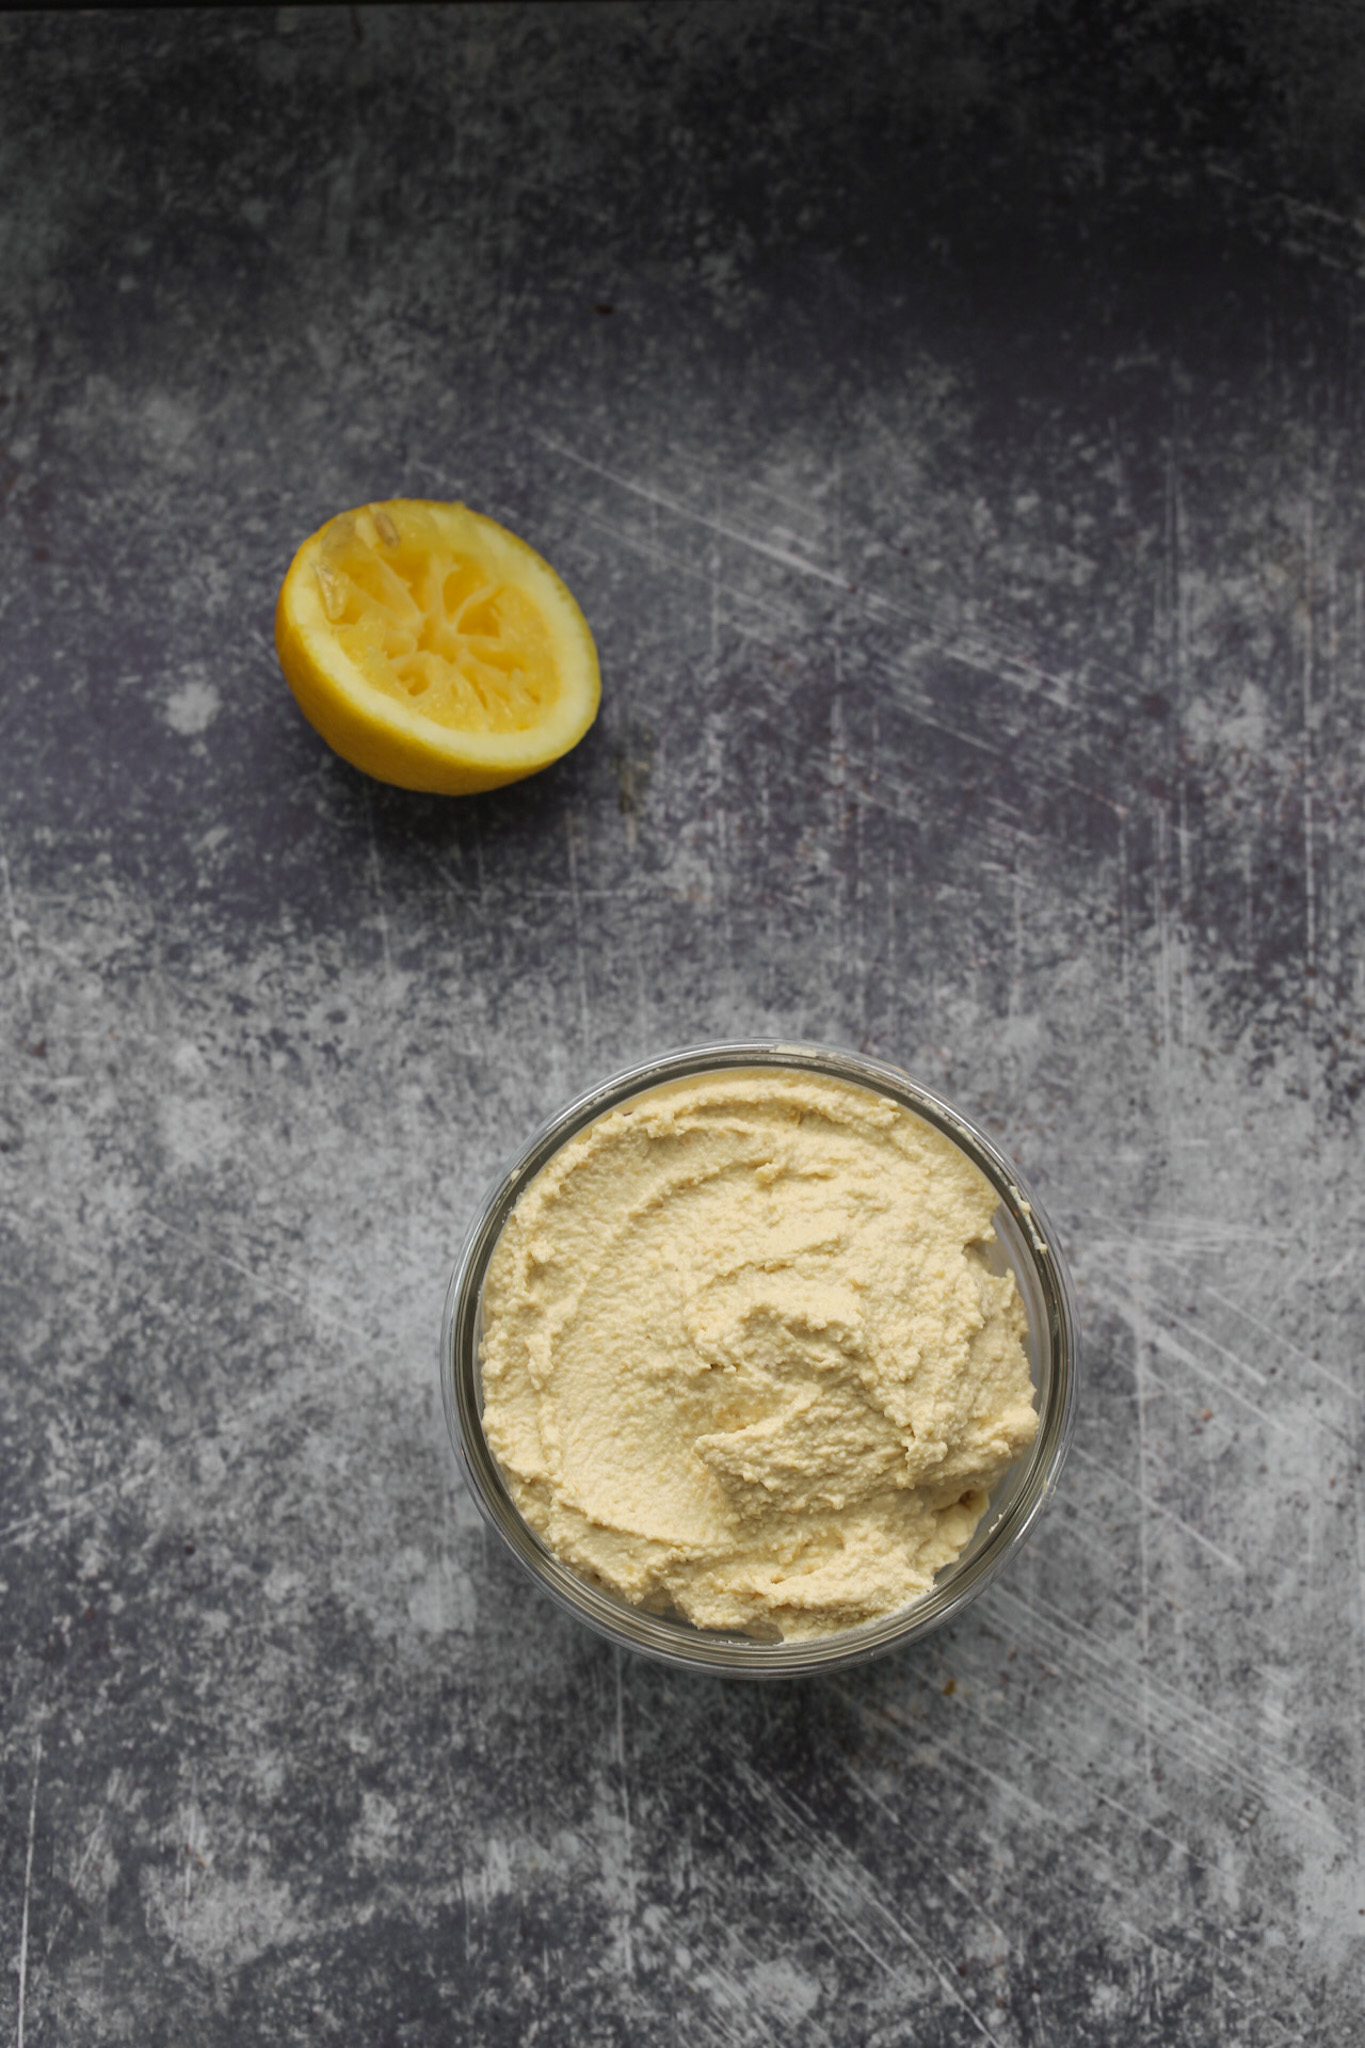 lemony ricotta cheese in a bowl